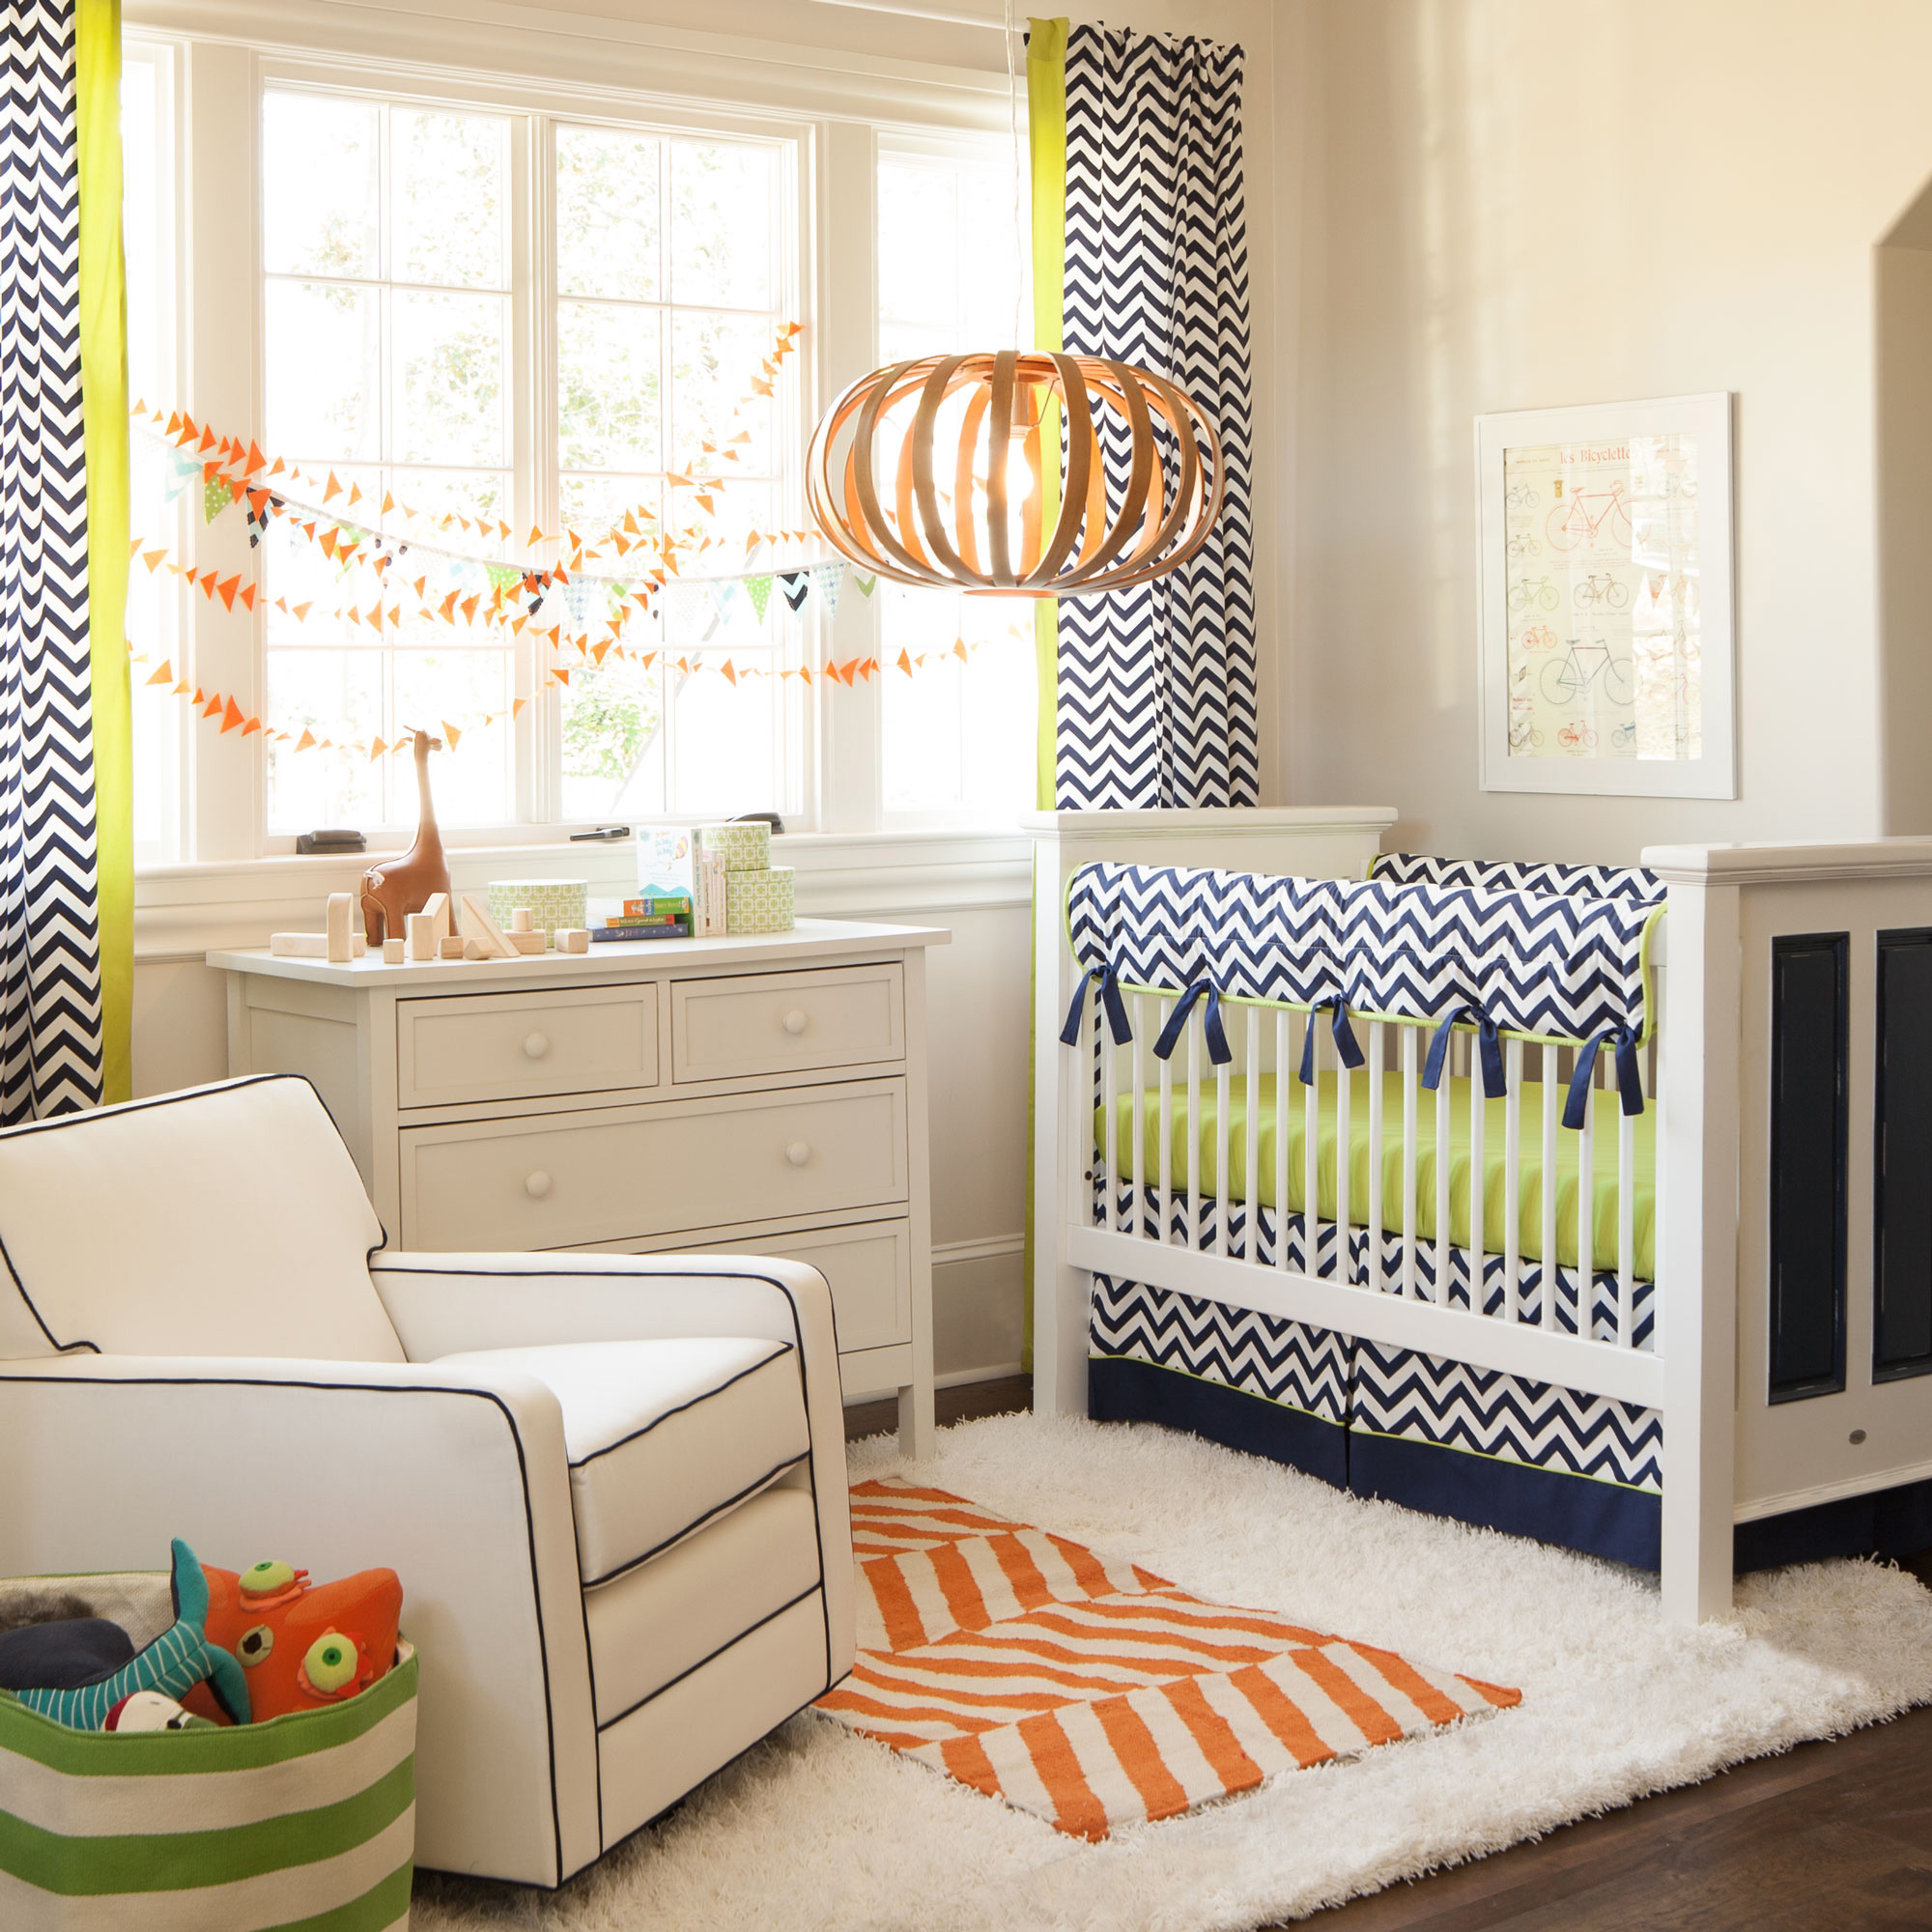 New Navy and Citron Zig Zag Crib Bedding from Carousel Designs